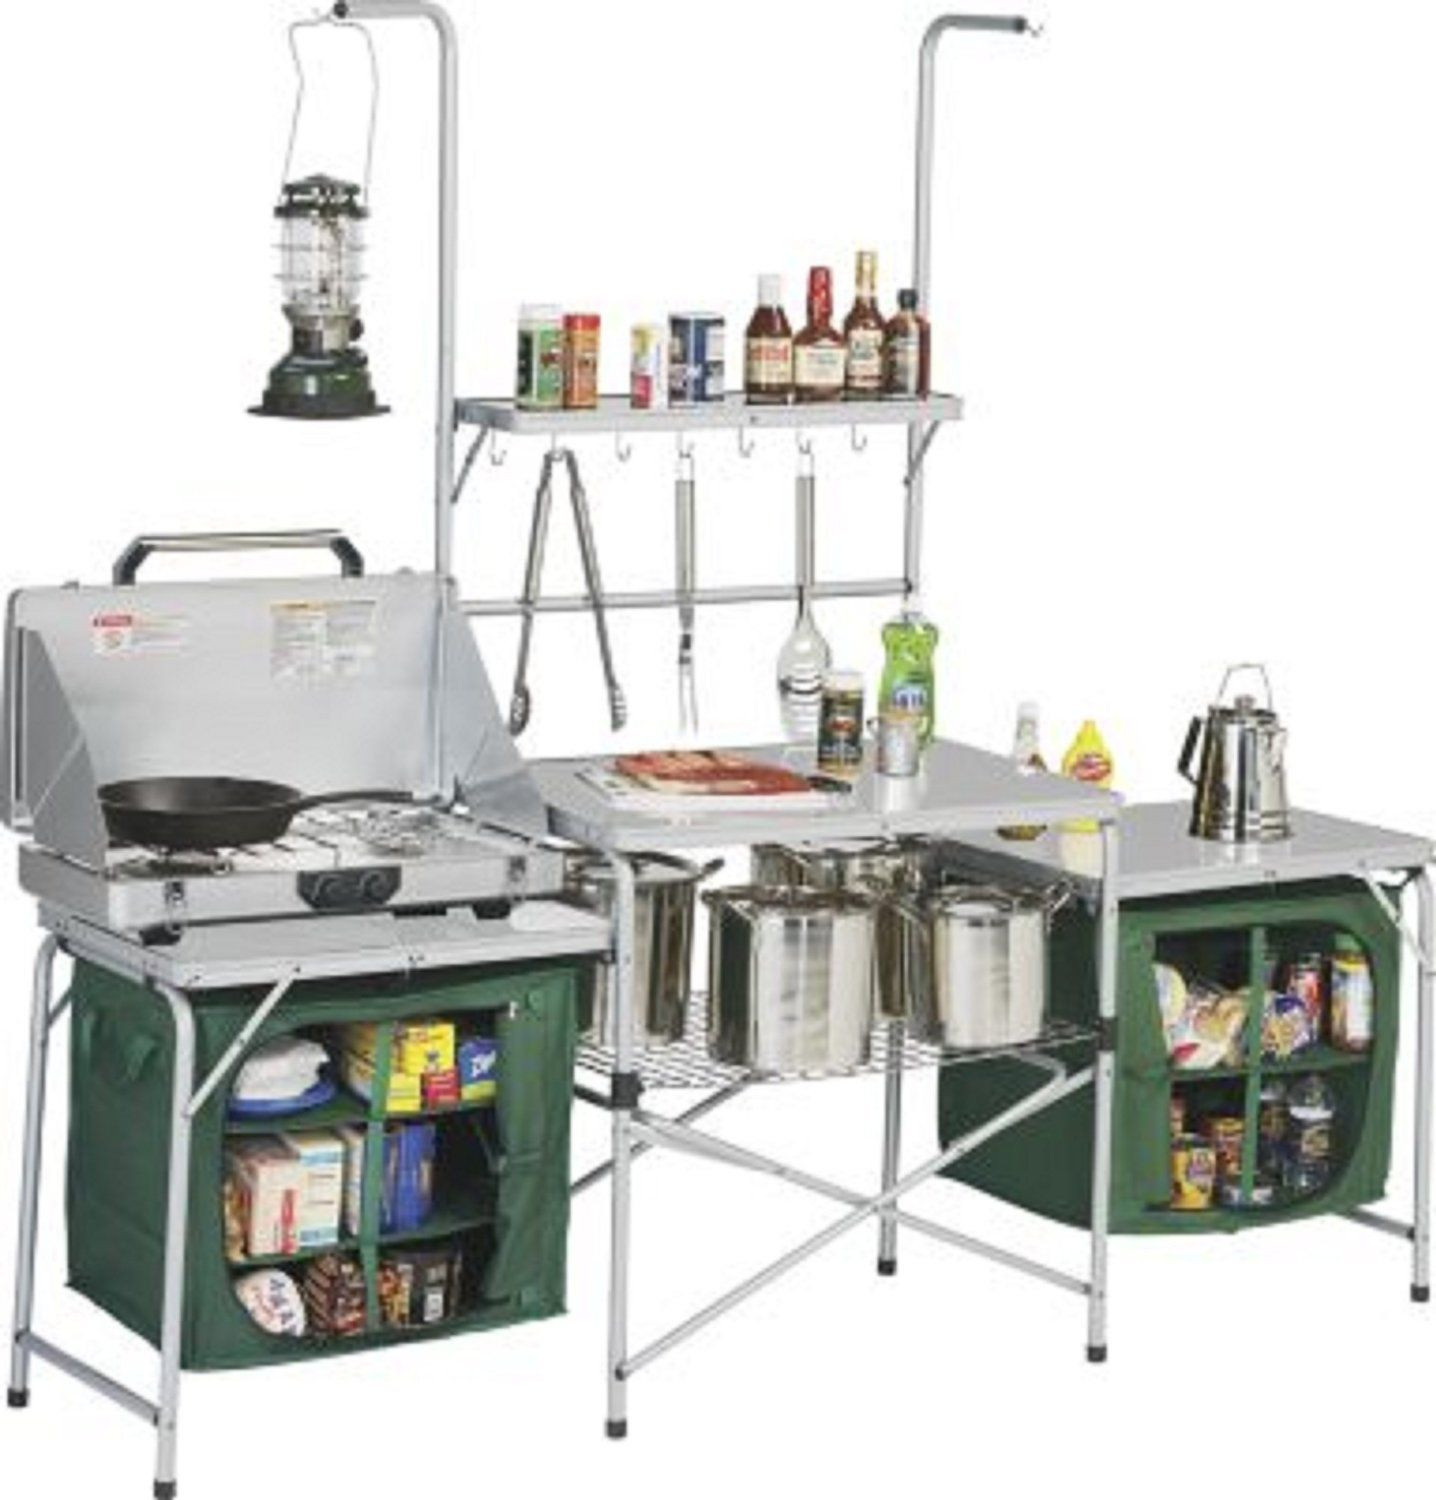 Outdoor Camping Kitchen With Sink  $250 Amazon Outdoor Deluxe Portable Camping Kitchen